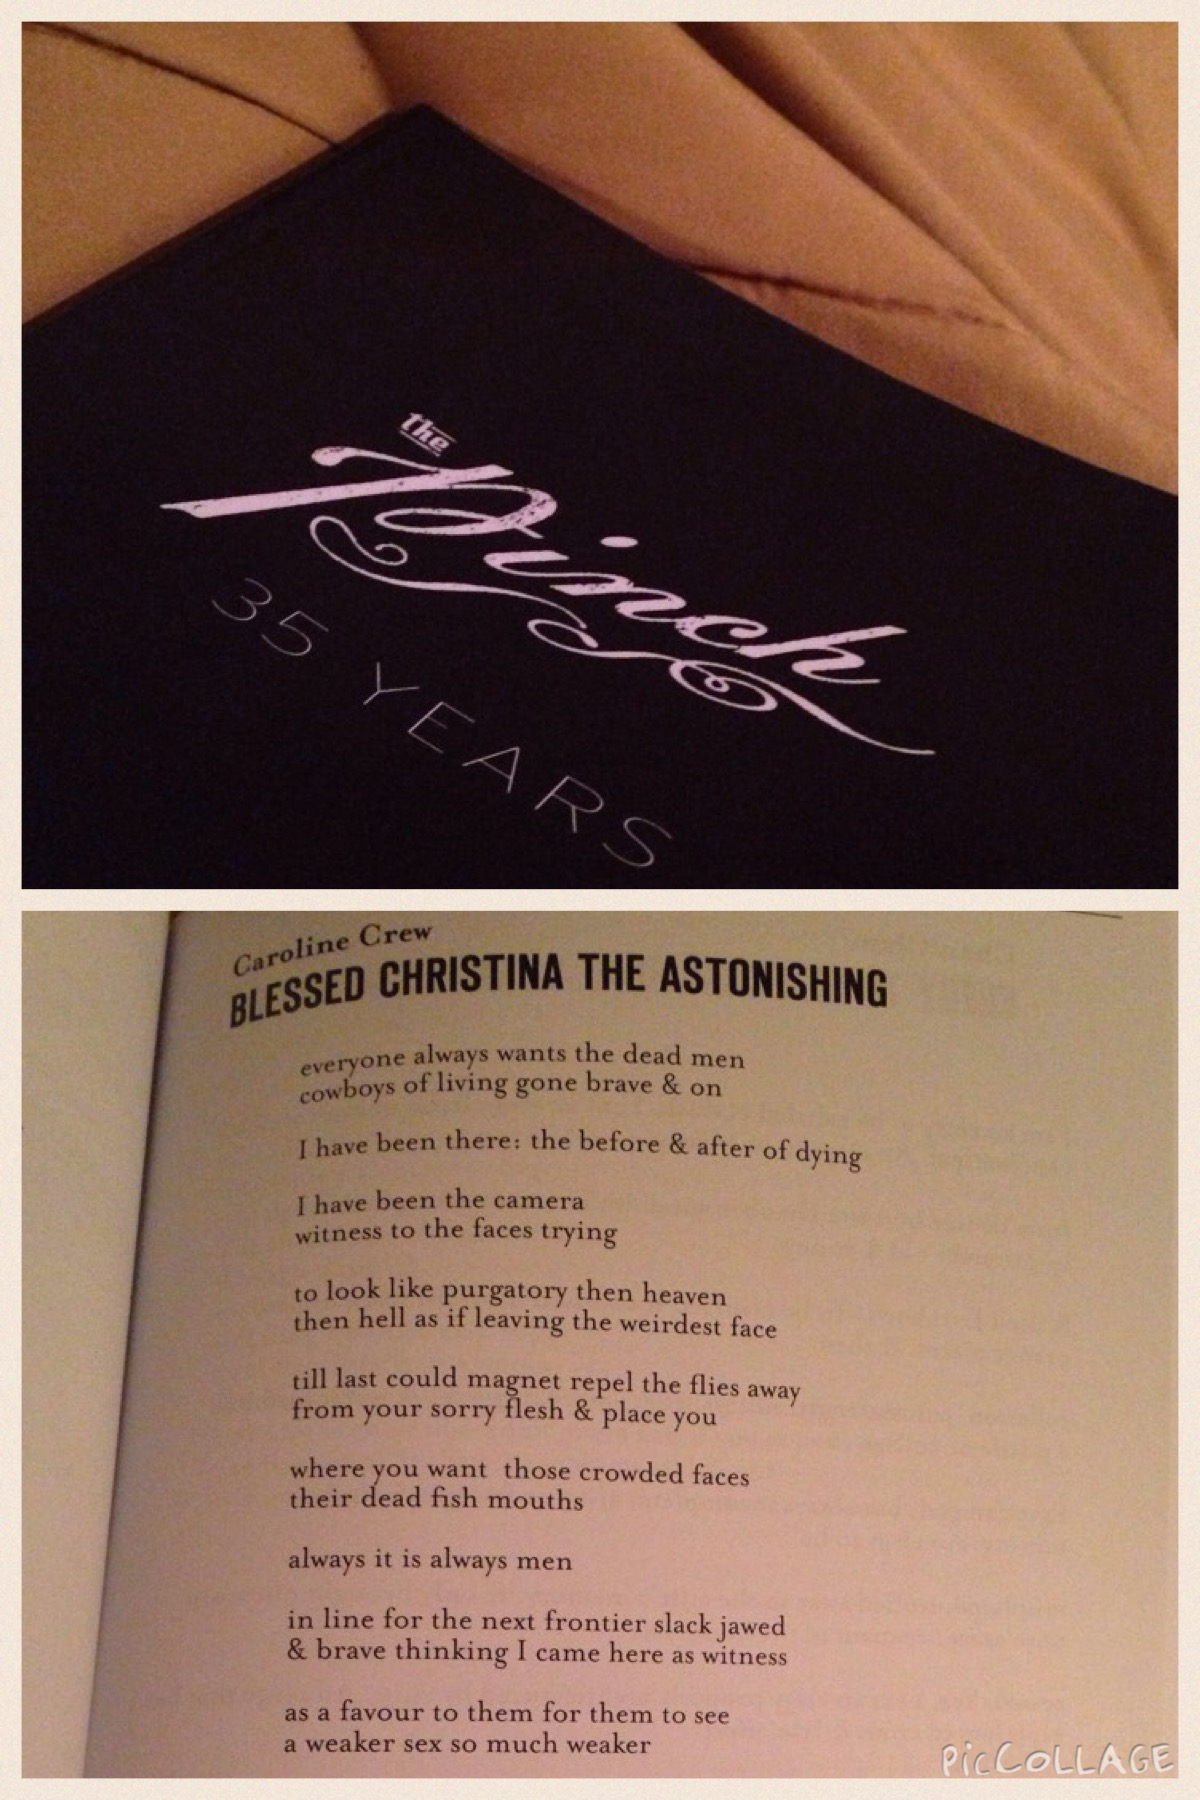 Excited my copy of The Pinch arrived with a lady saint poem in it!